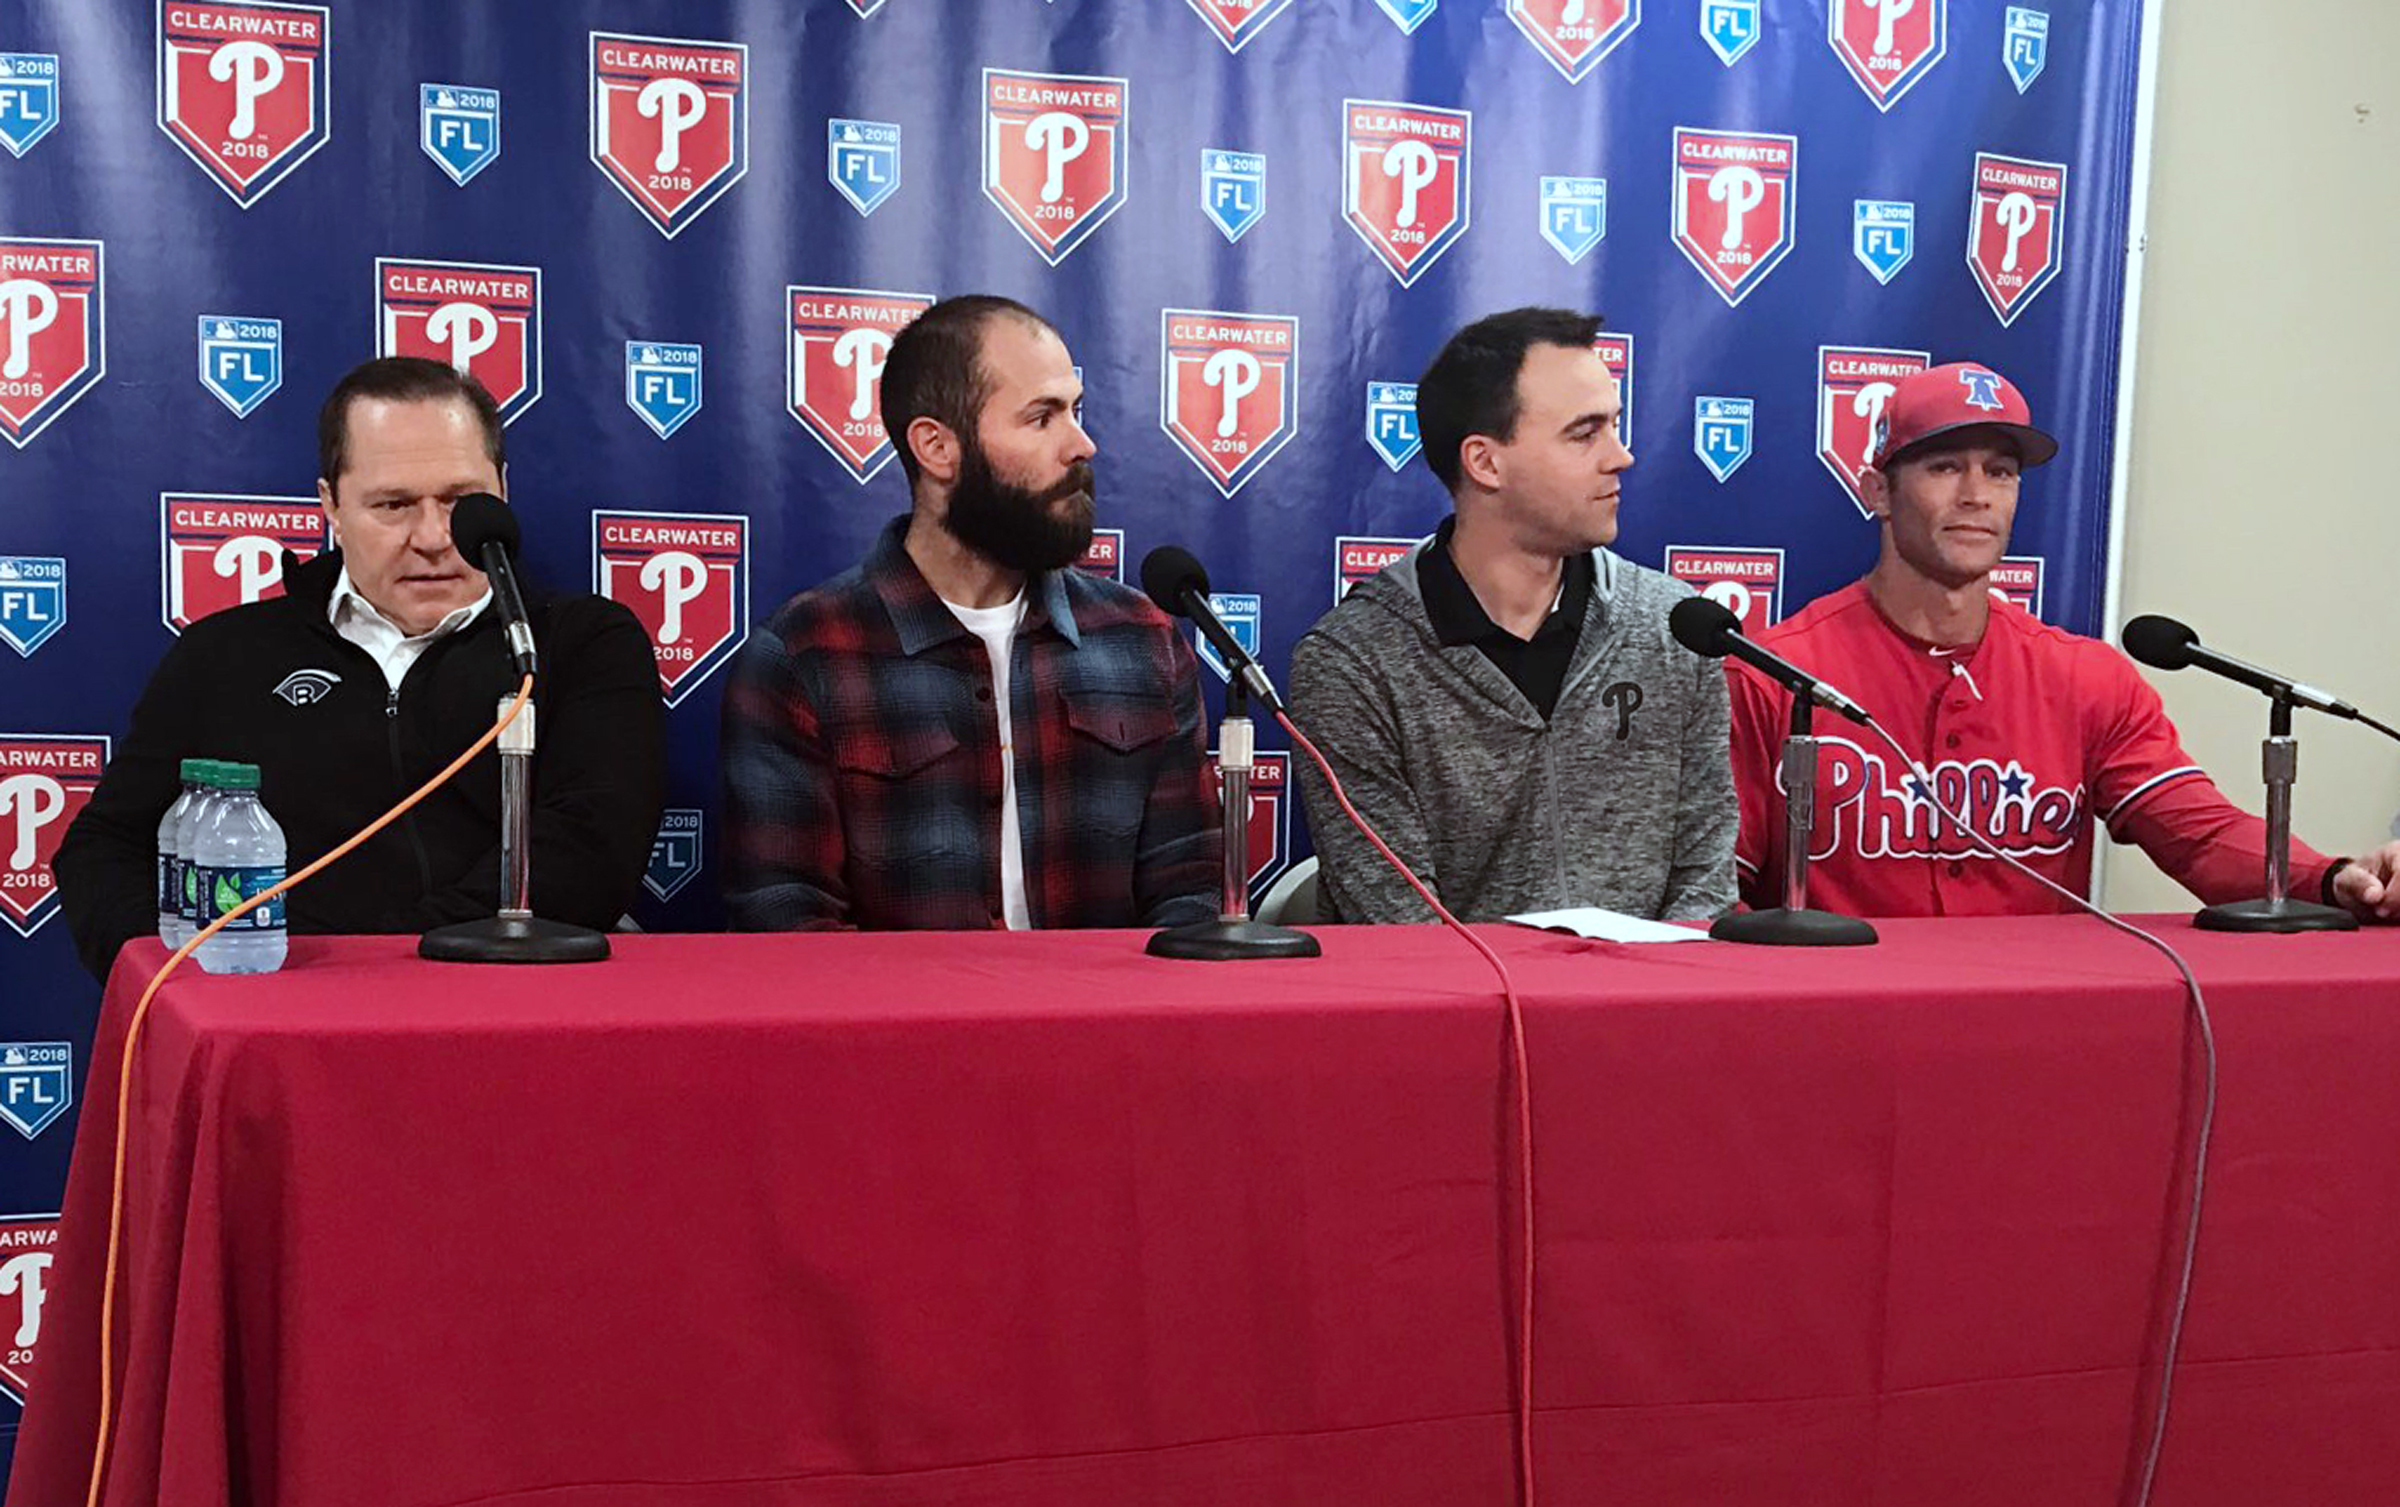 New Phillies pitcher Jake Arrieta (second from left) at his introductory press conference Tuesday with (from left) agent Scott Boras, Phillies general manager Matt Klentak and Phillies manager Gabe Kapler.